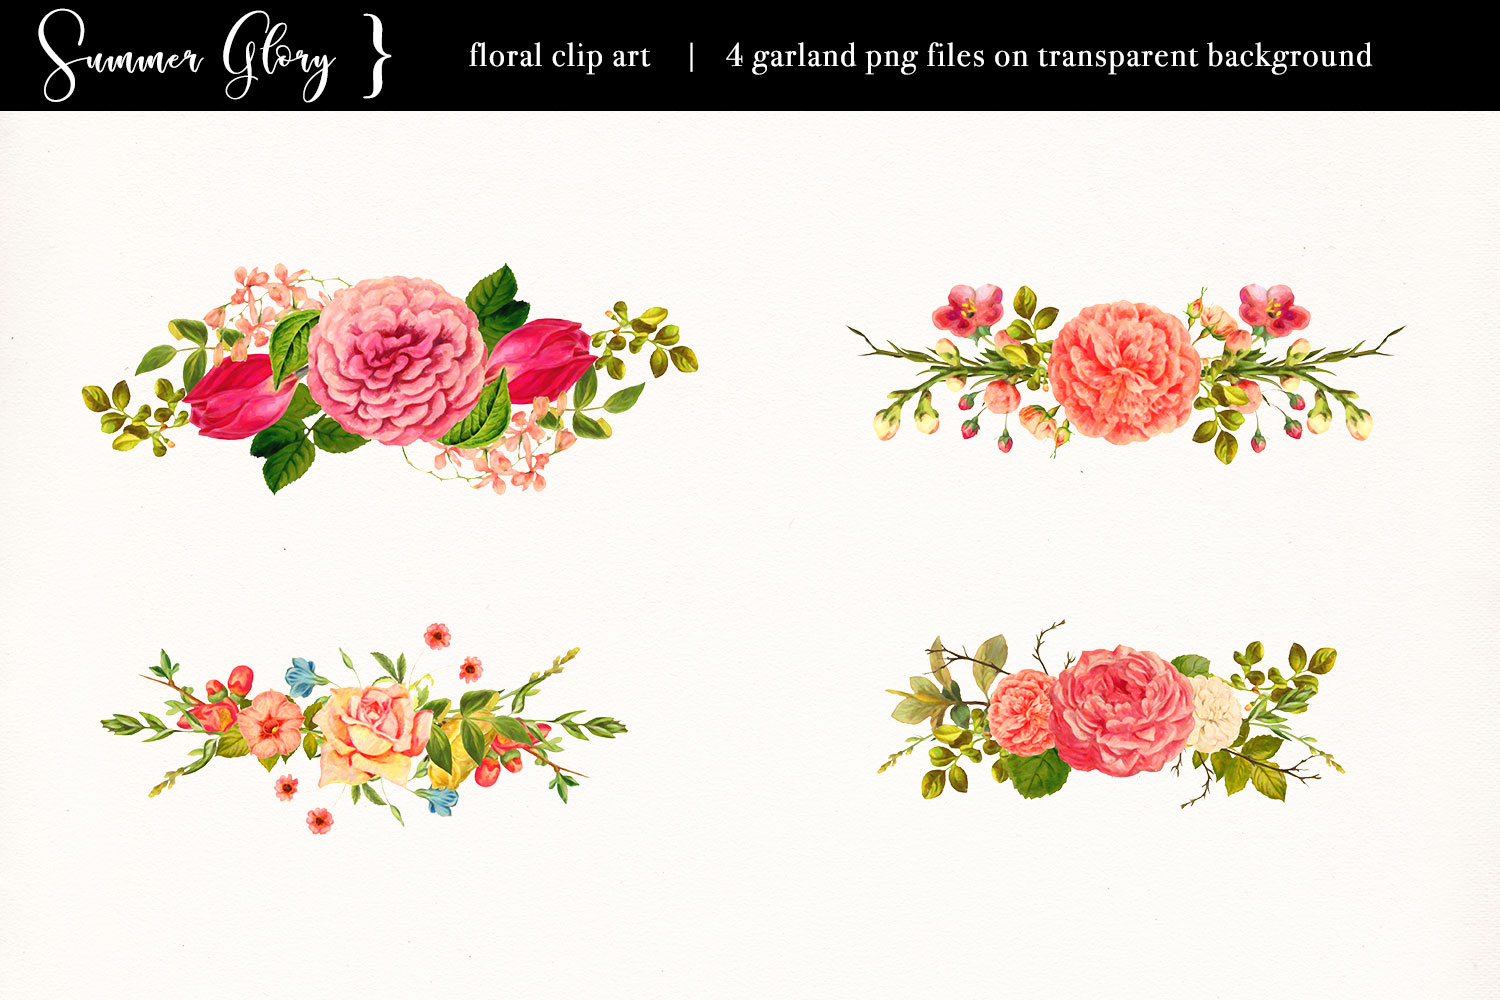 Floral Clip Art - Summer Glory example image 5